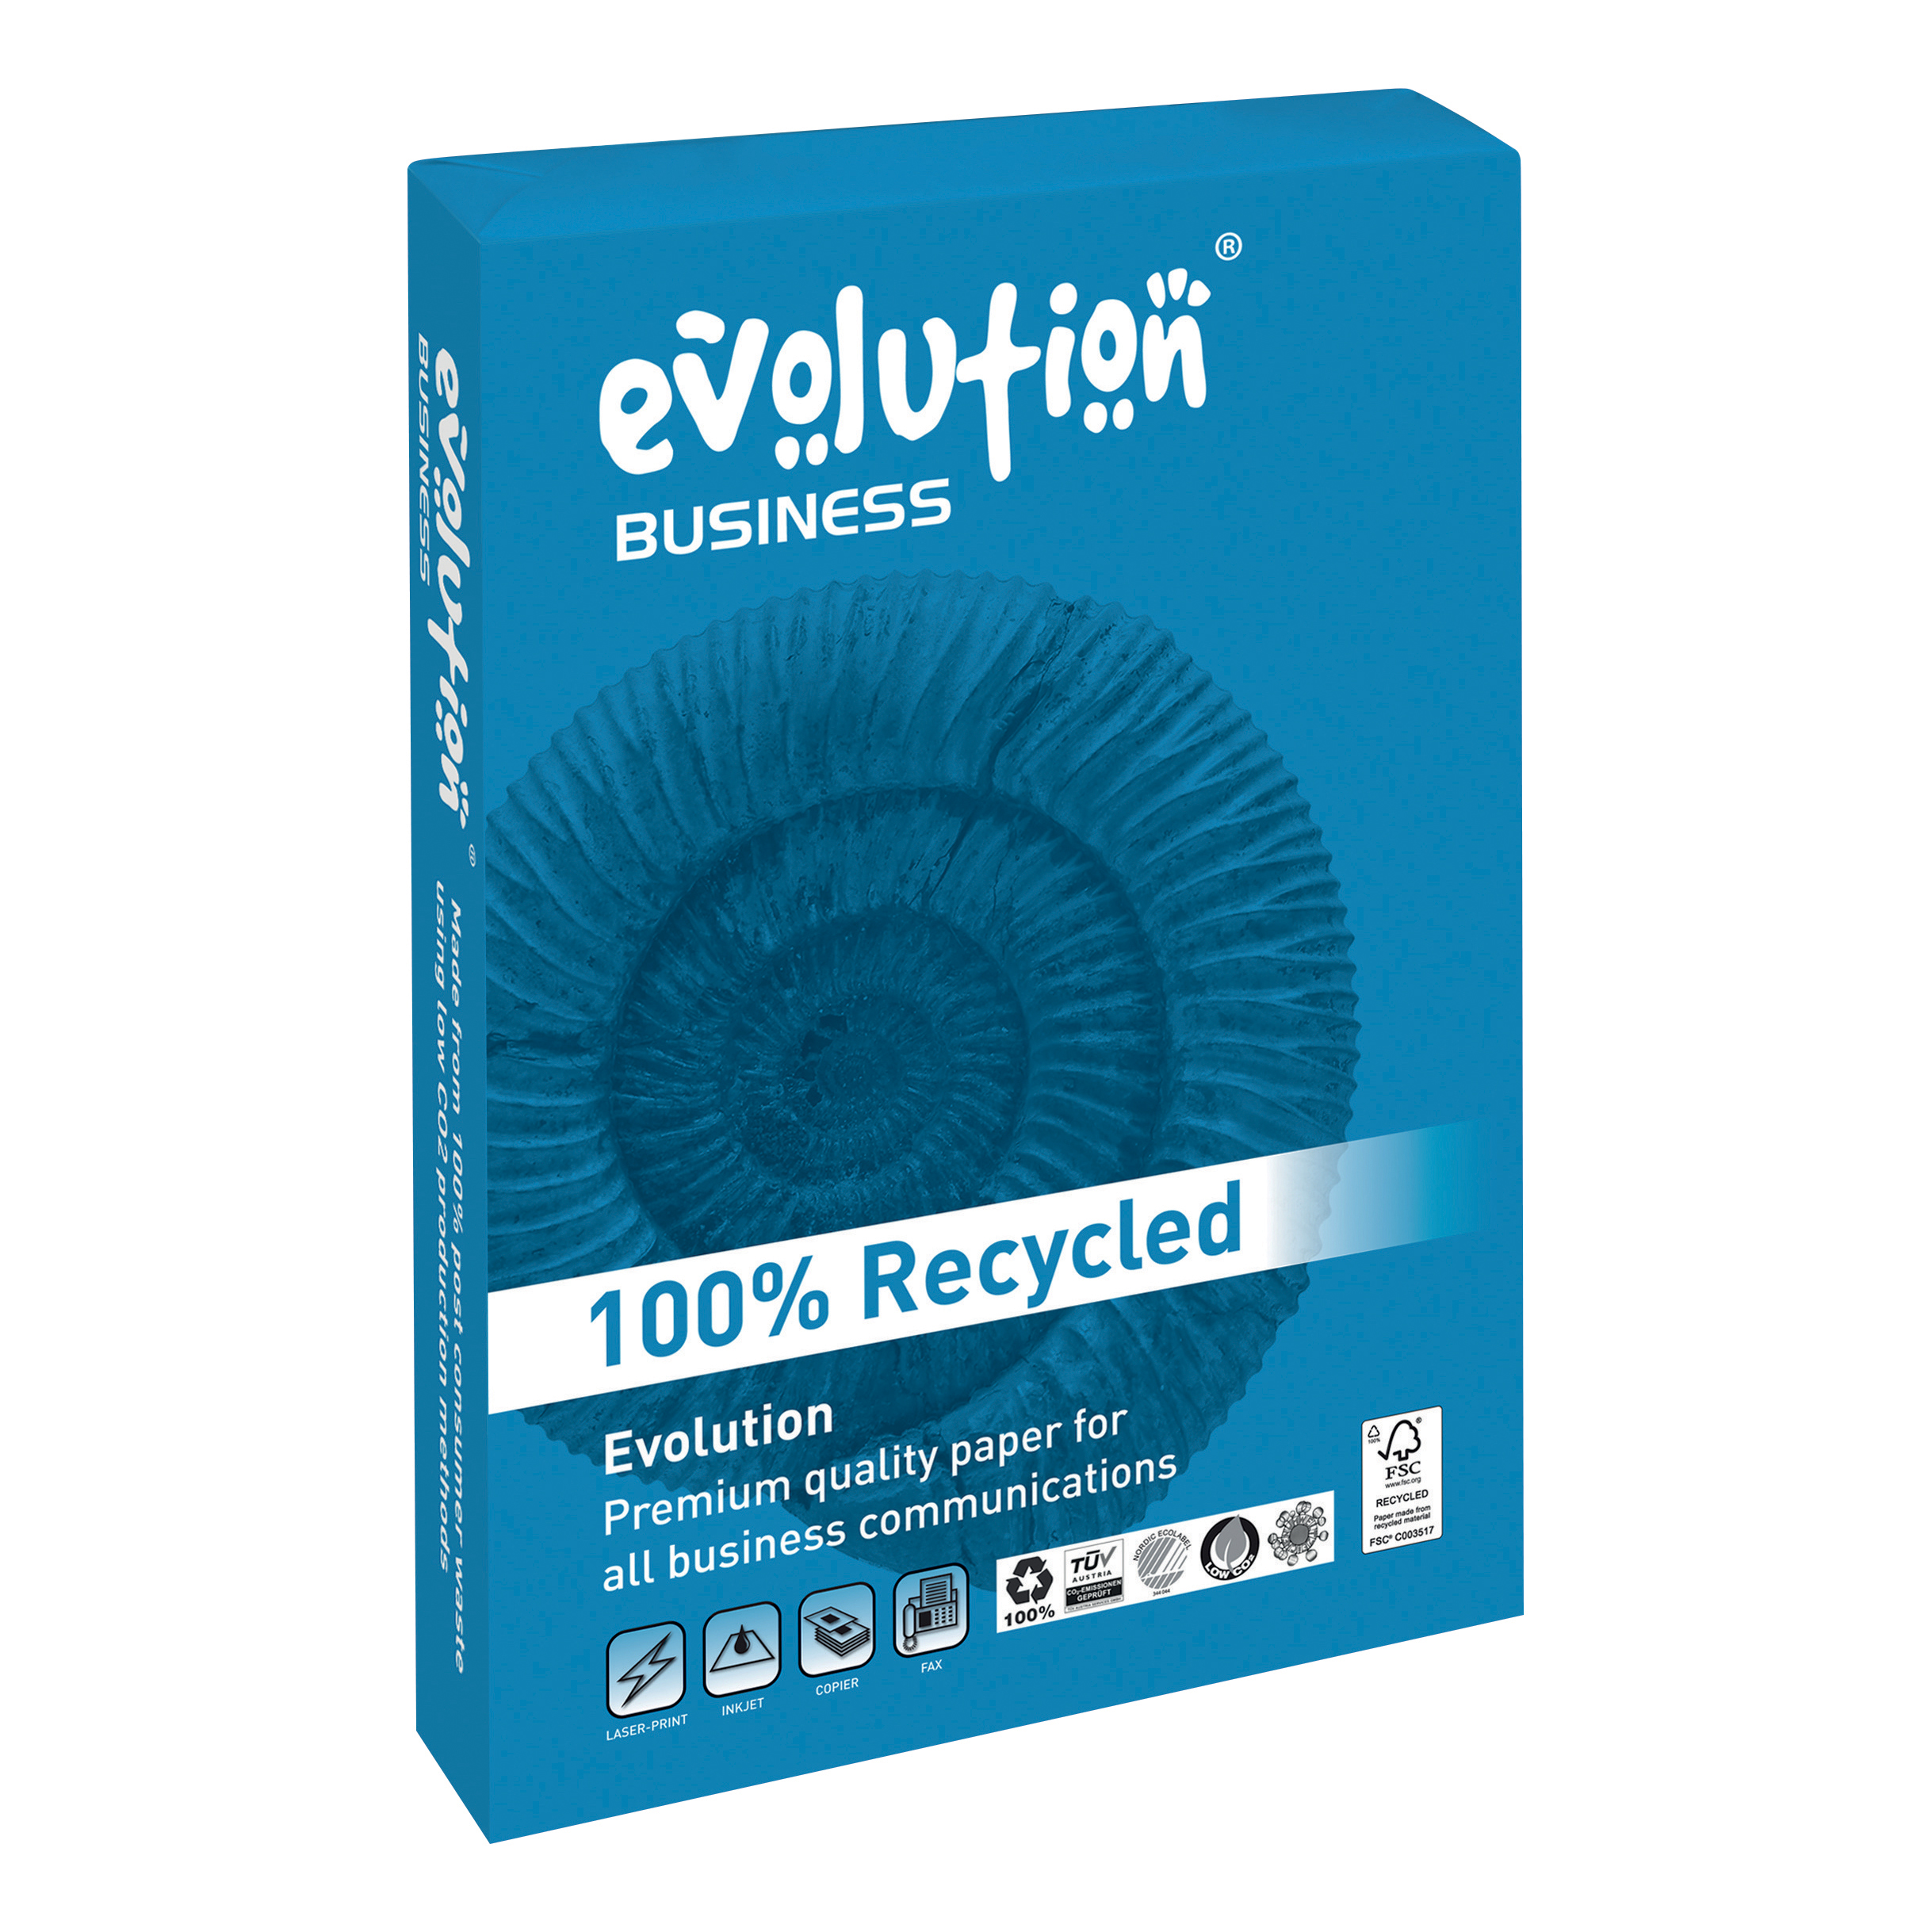 Evolution Business Recycled Paper 80gsm FSC A4 White Ref EVBU2180 500 Sheets